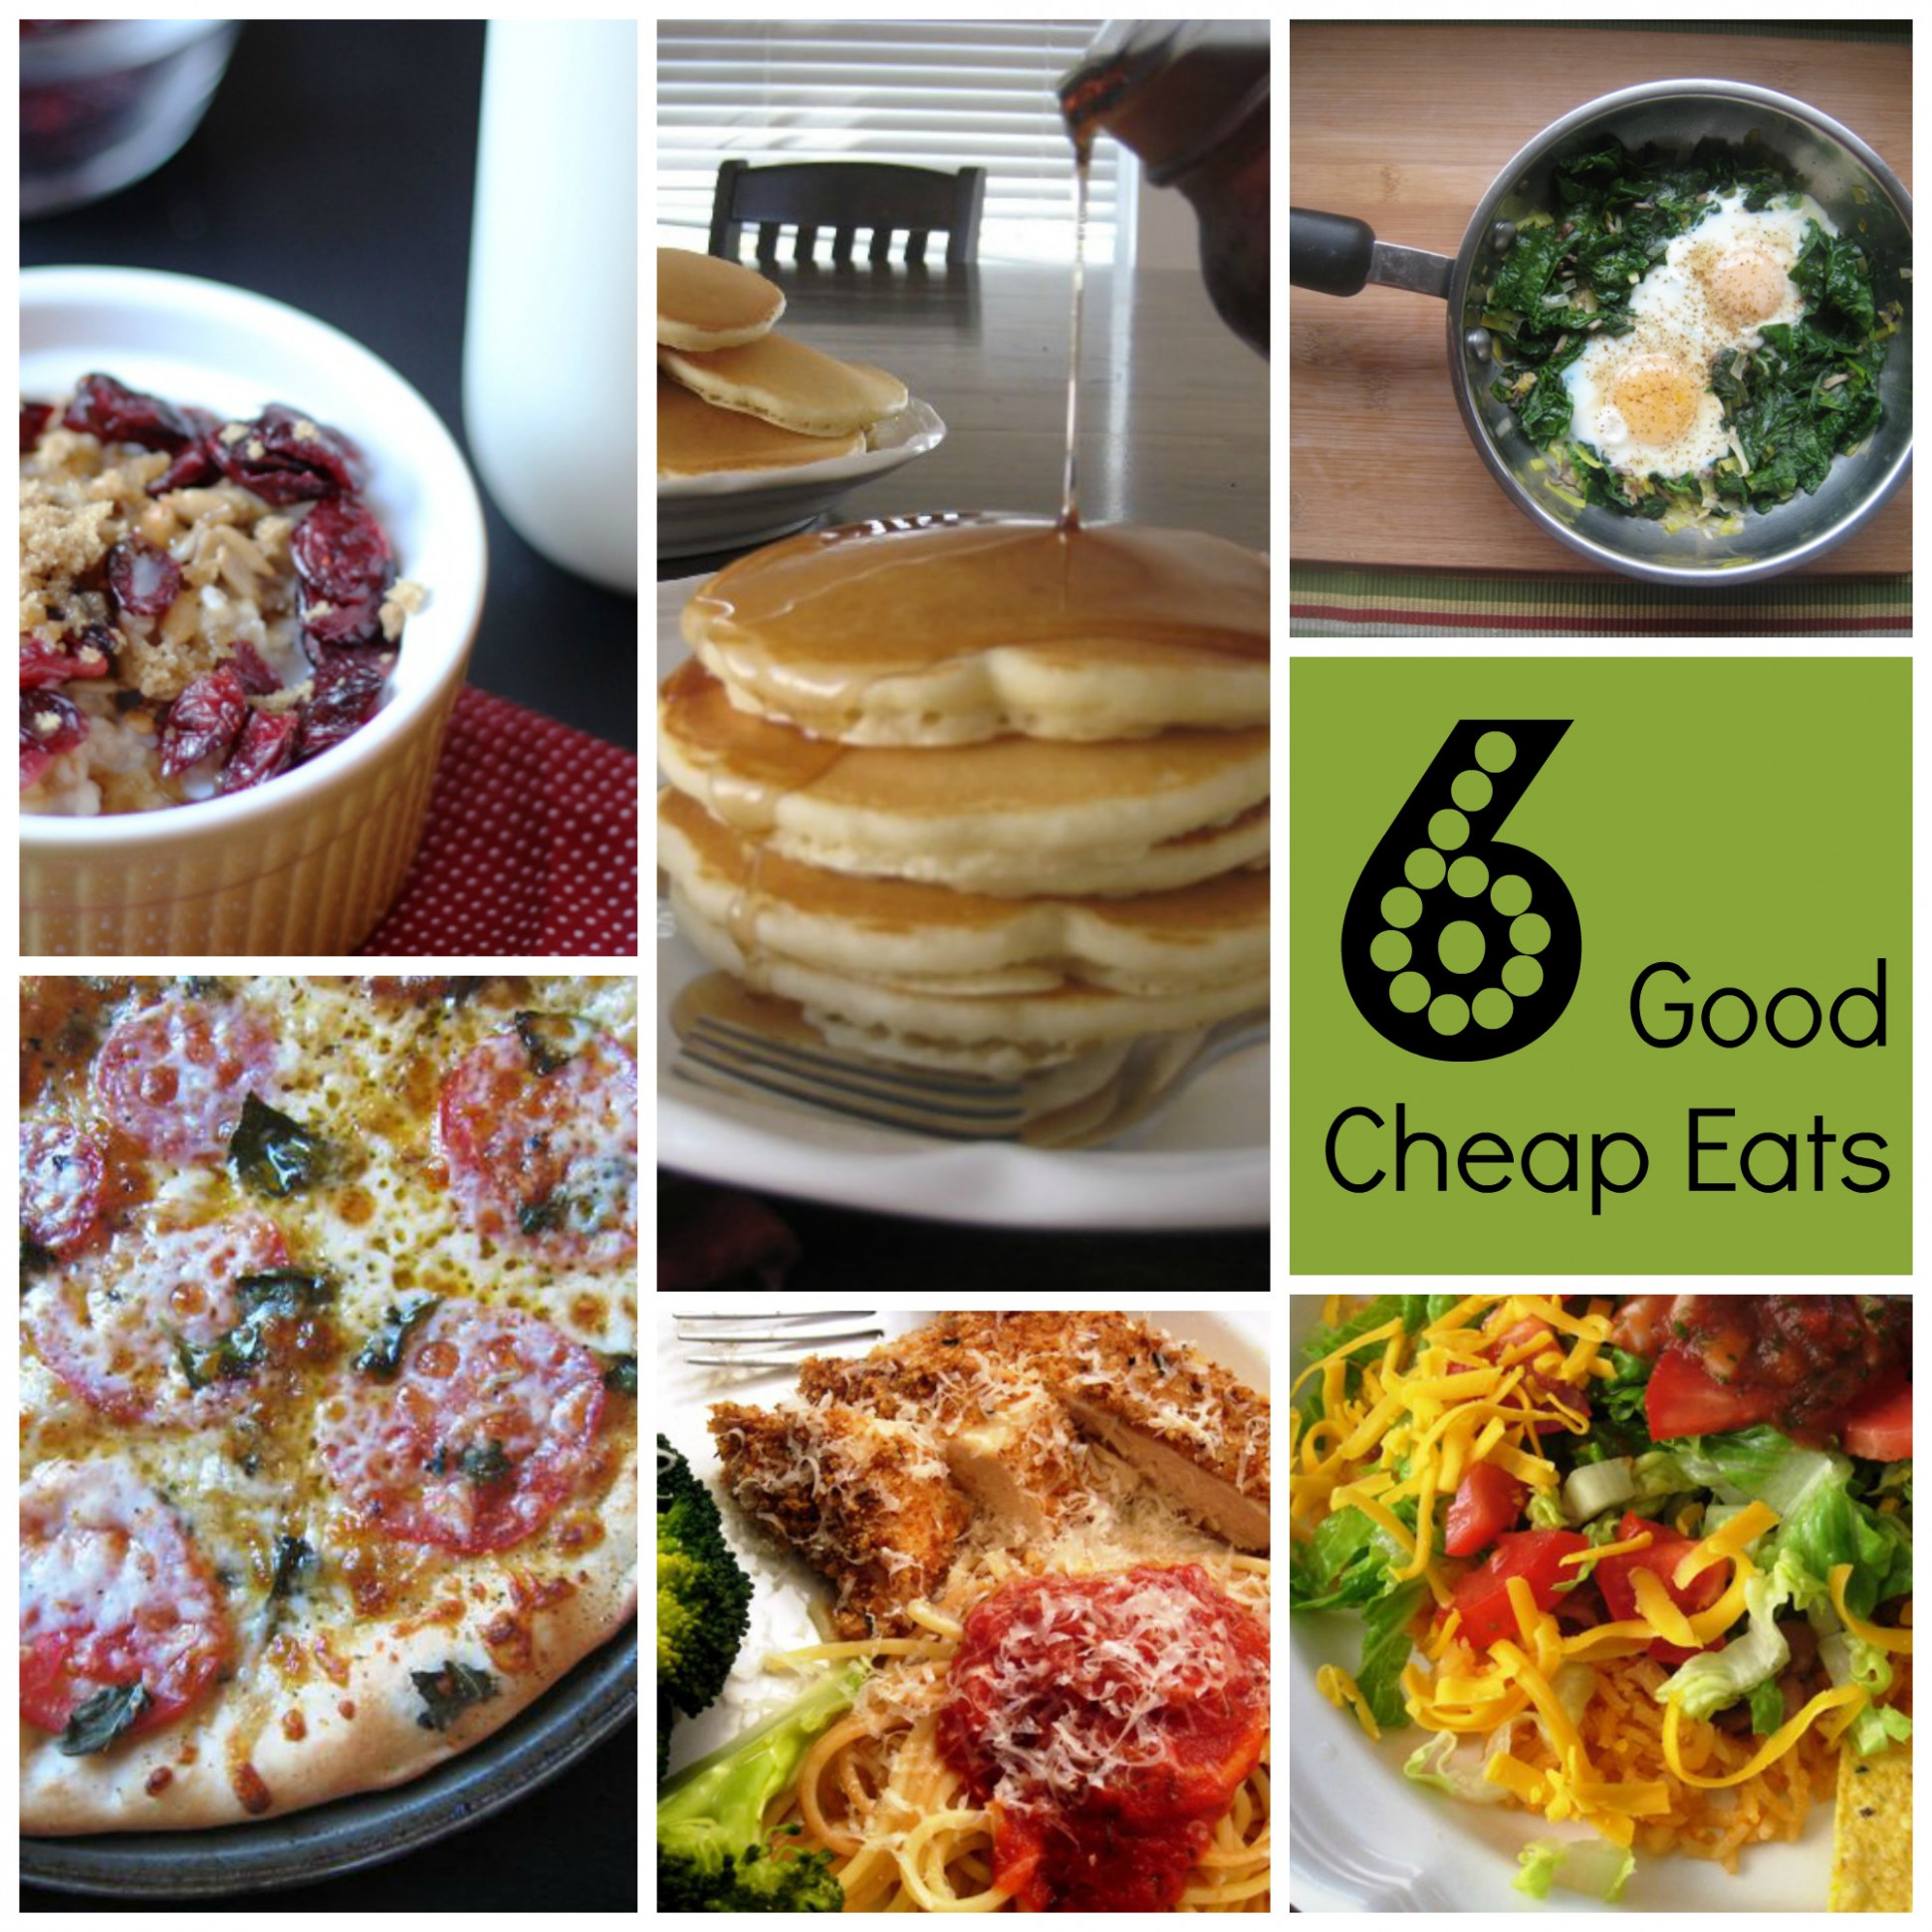 15 Good Cheap Eats   Easy Affordable Meals   Budget Recipes - recipes easy cheap dinner